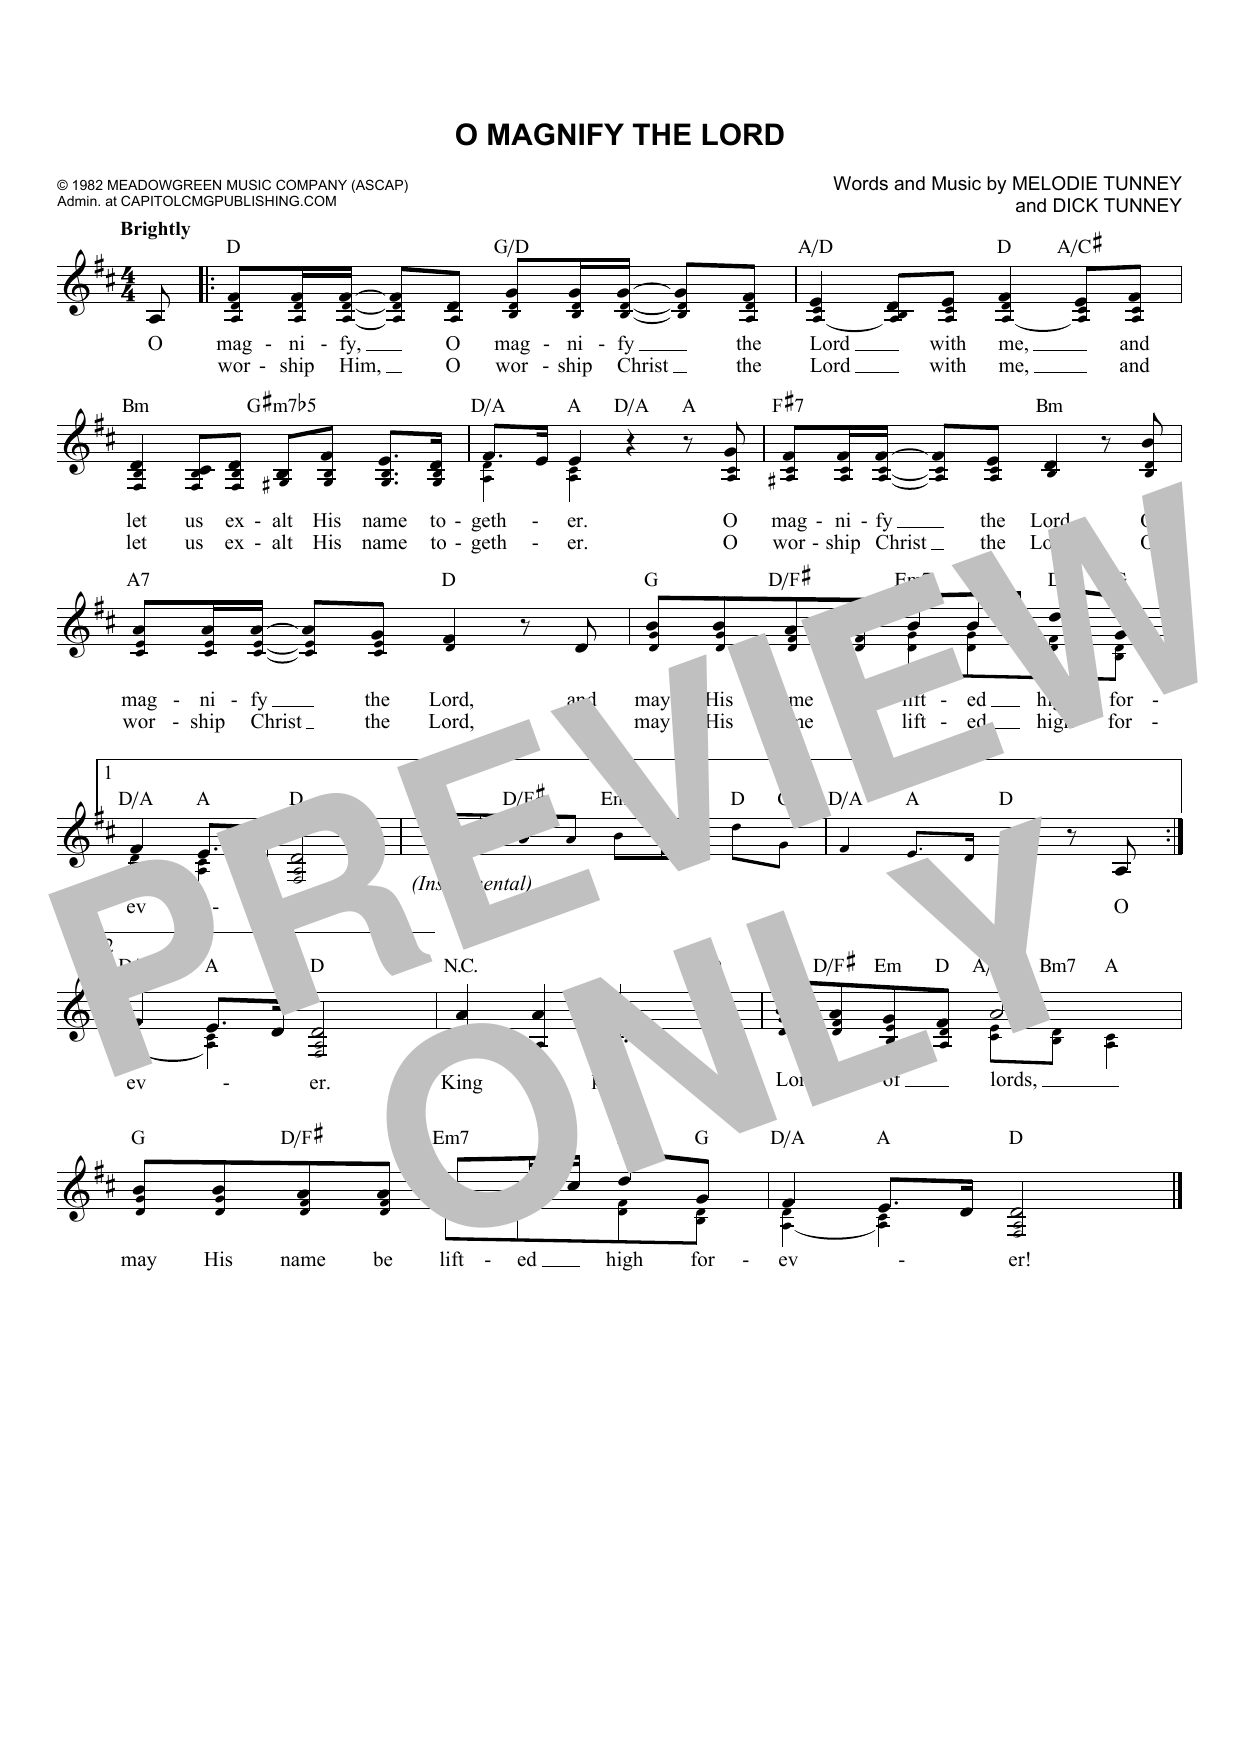 Dick & Mel Tunney O Magnify The Lord sheet music notes and chords. Download Printable PDF.